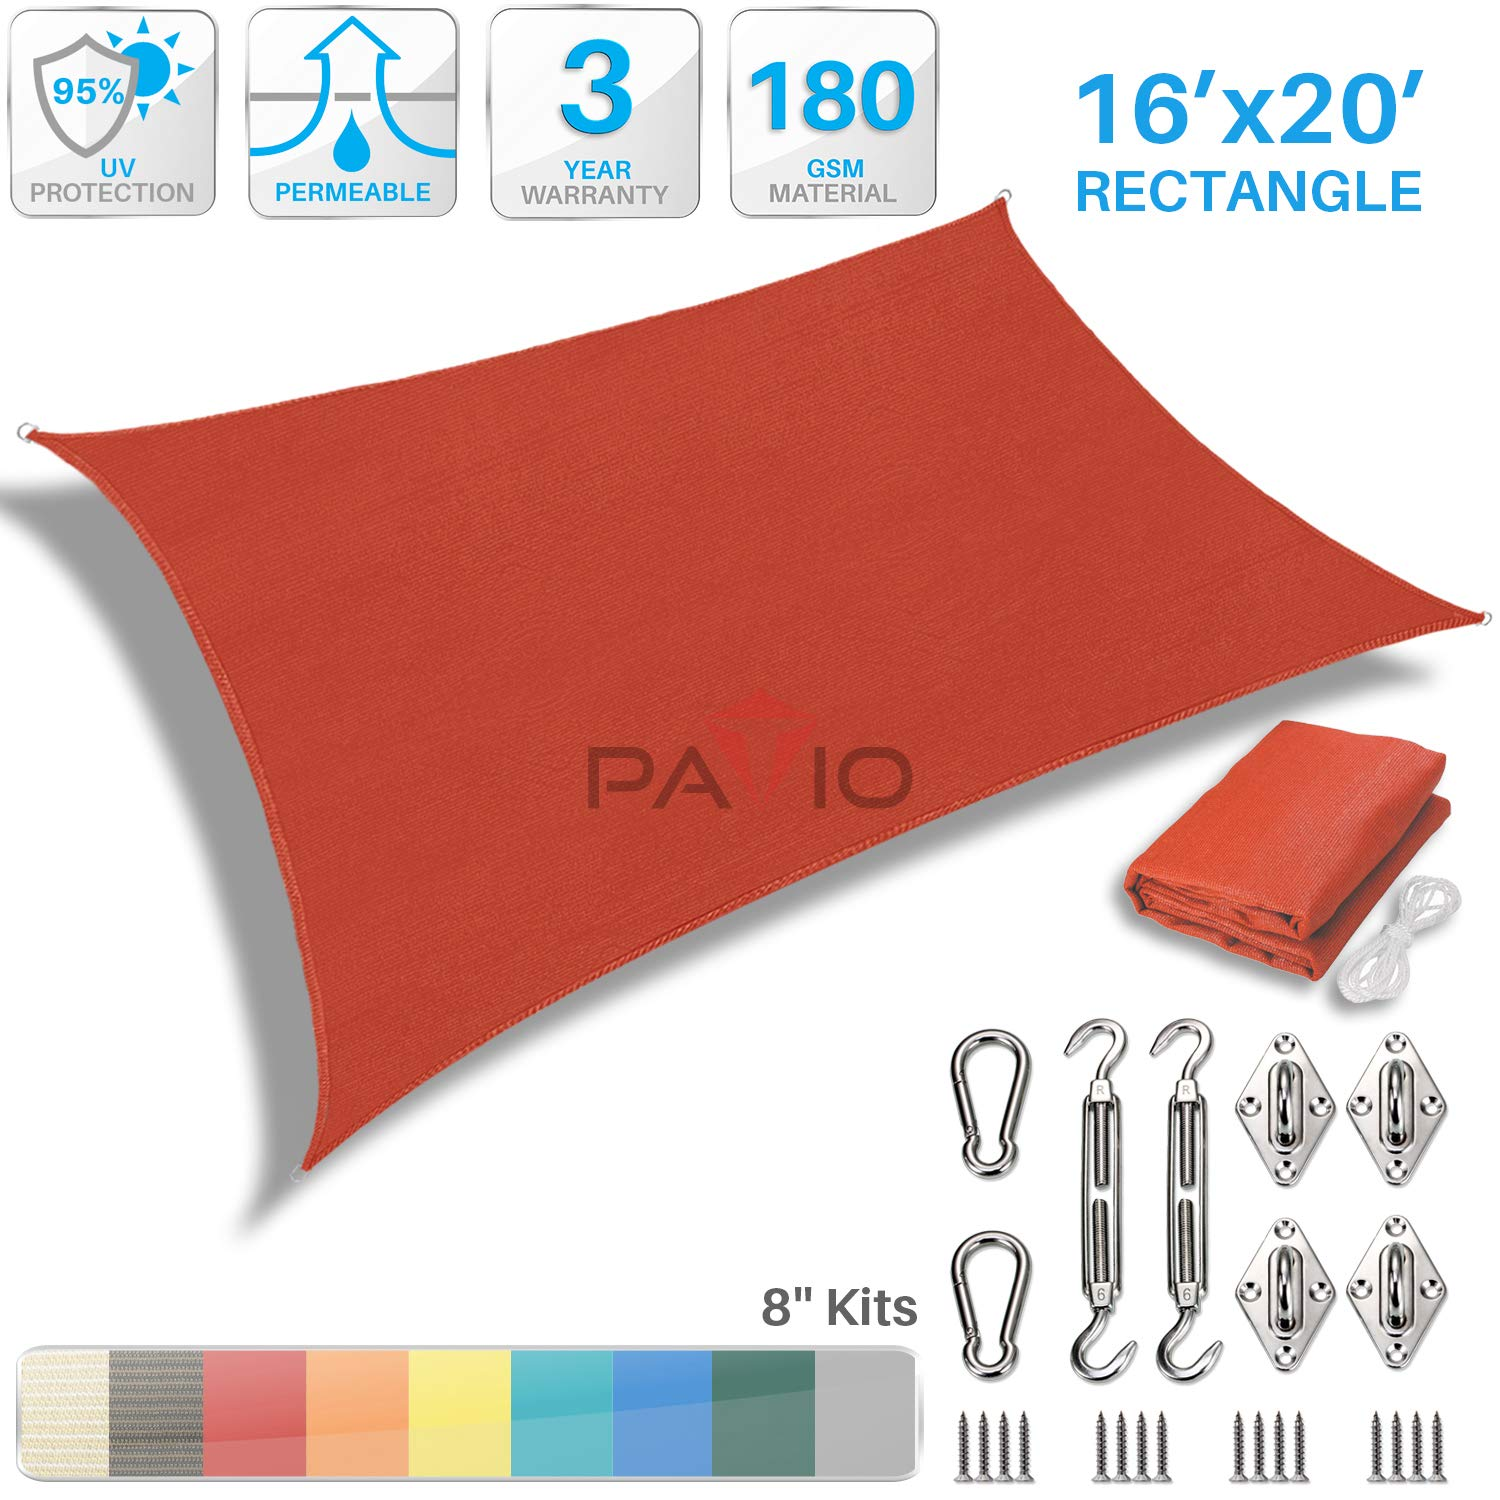 PATIO Paradise 16 x 20 Sun Shade Sail with 8 inch Hardware Kit, Red Rectangle Canopy Durable Shade Fabric Outdoor UV Shelter Cover – 3 Year Warranty – Custom